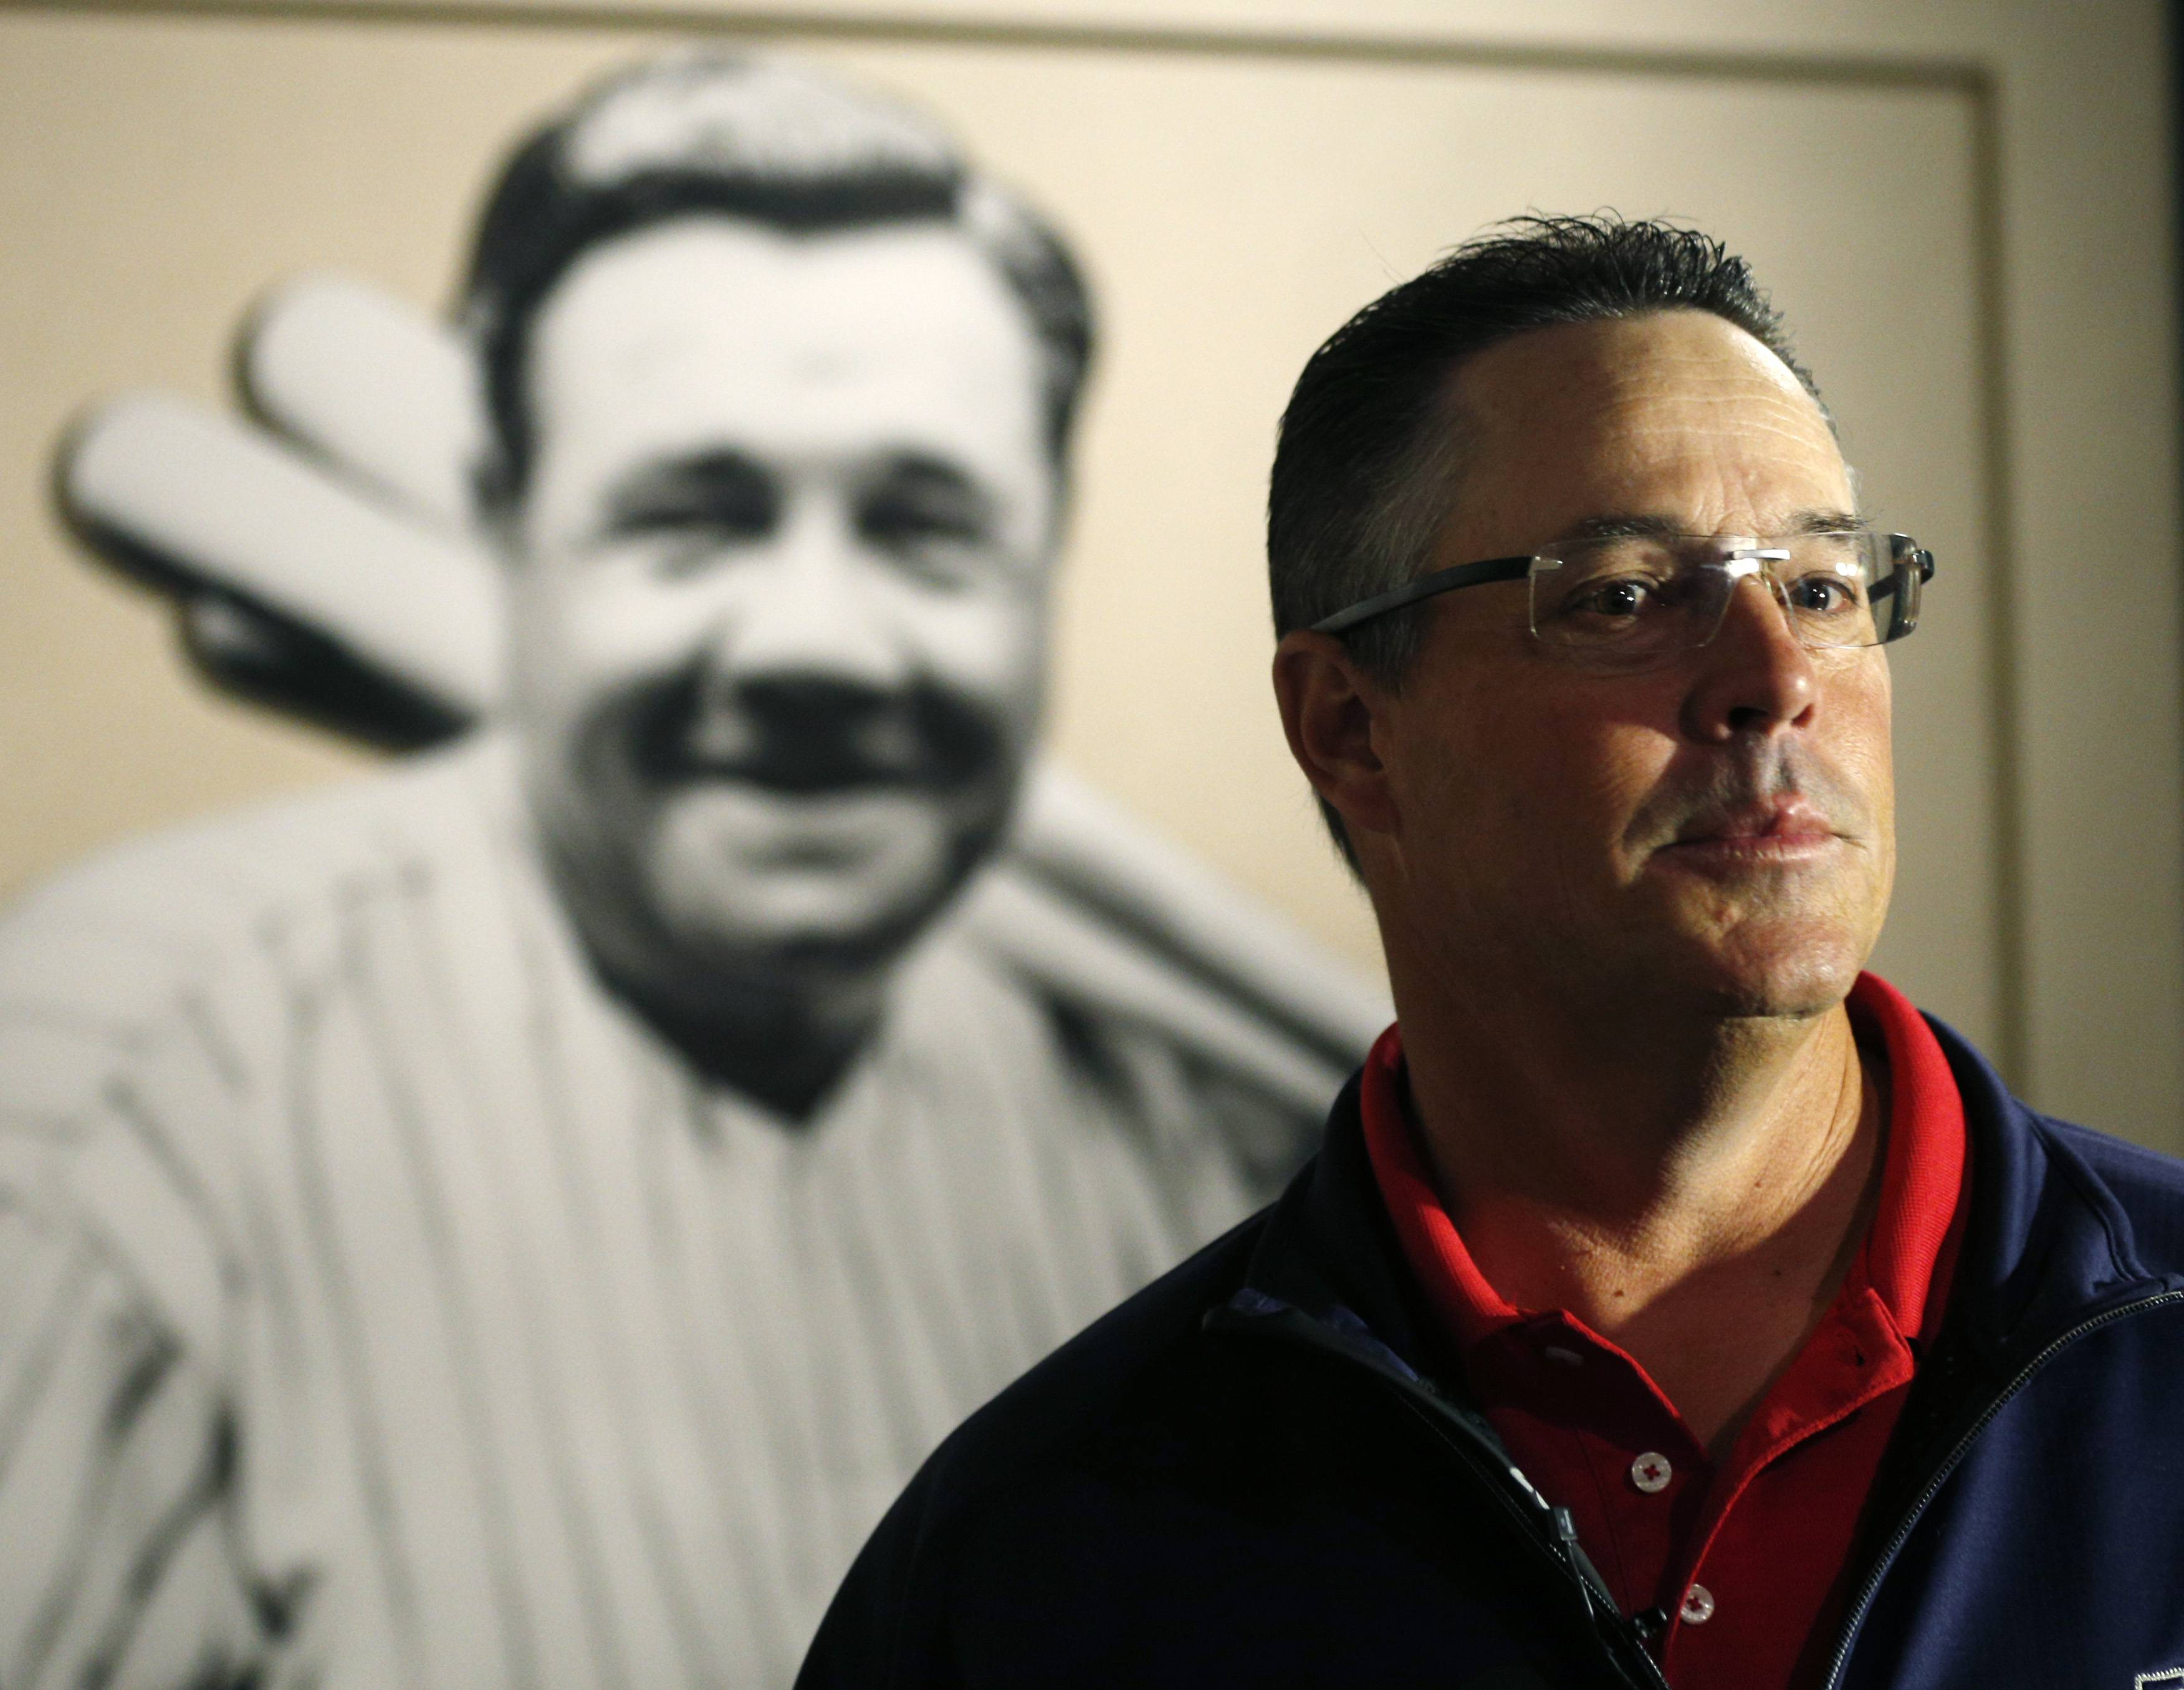 Ex-Cubs pitcher Greg Maddux visits a Babe Ruth exhibit during his orientation visit at the Baseball Hall of Fame last March in Cooperstown, N.Y.